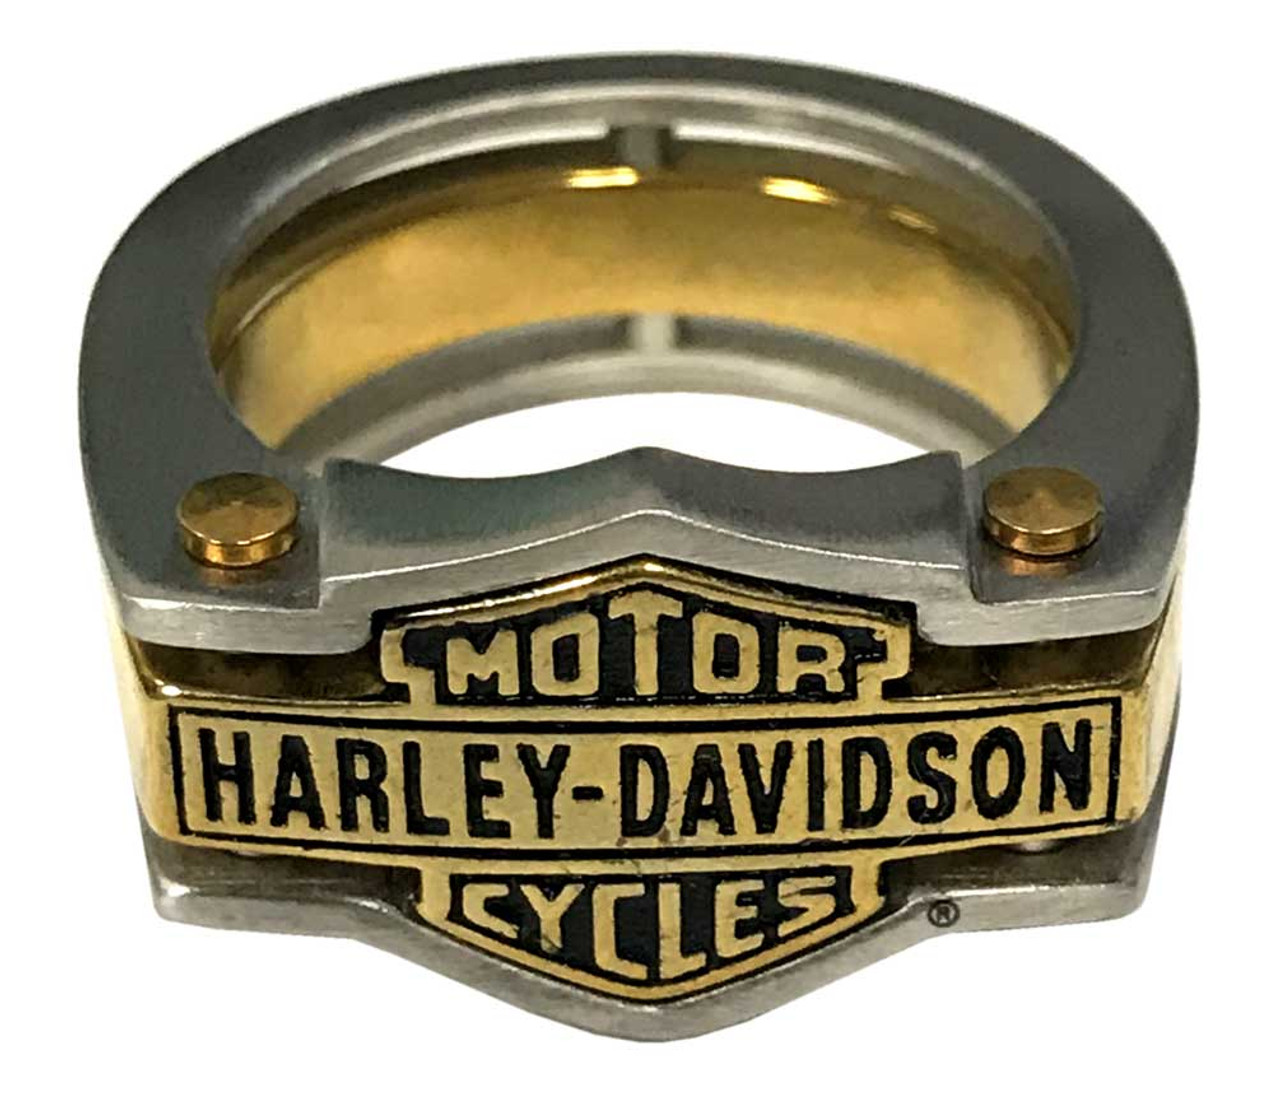 stainless steel belt buckle with harley logo